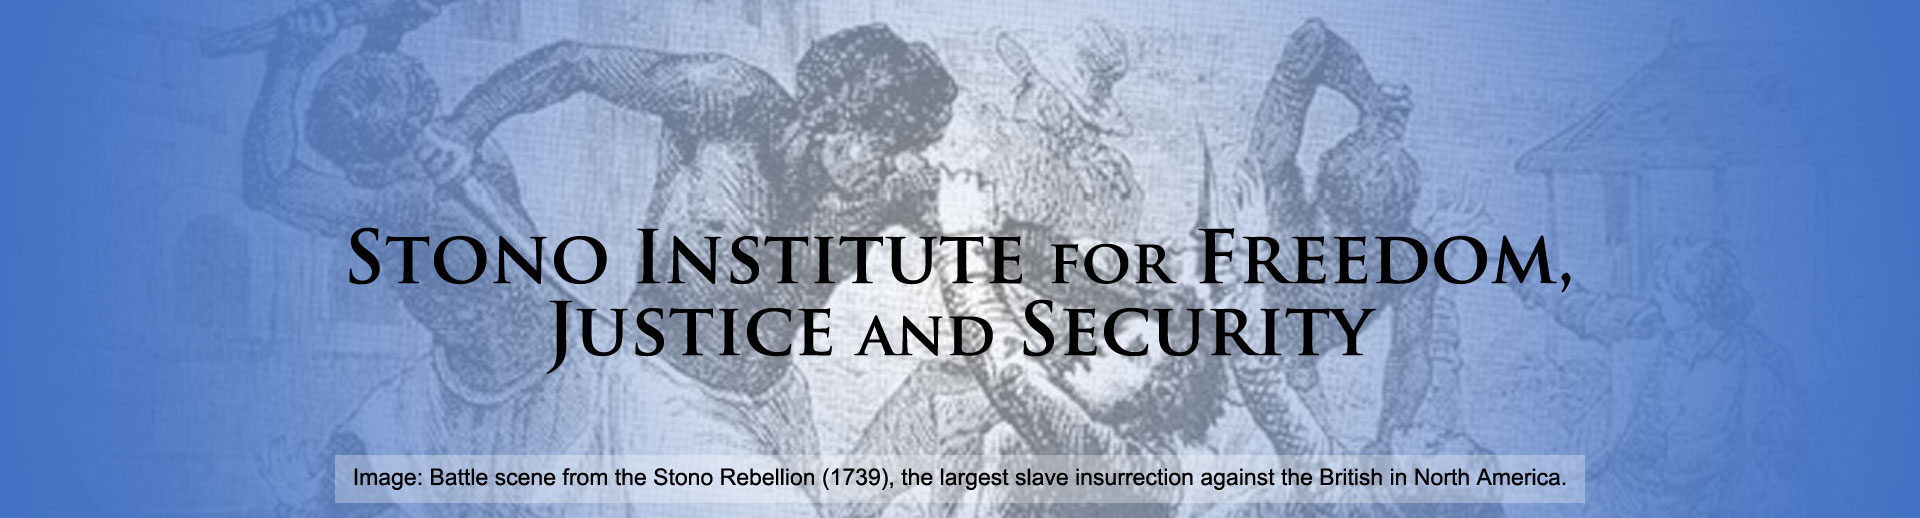 Stono Institute for Freedom, Justice and Security